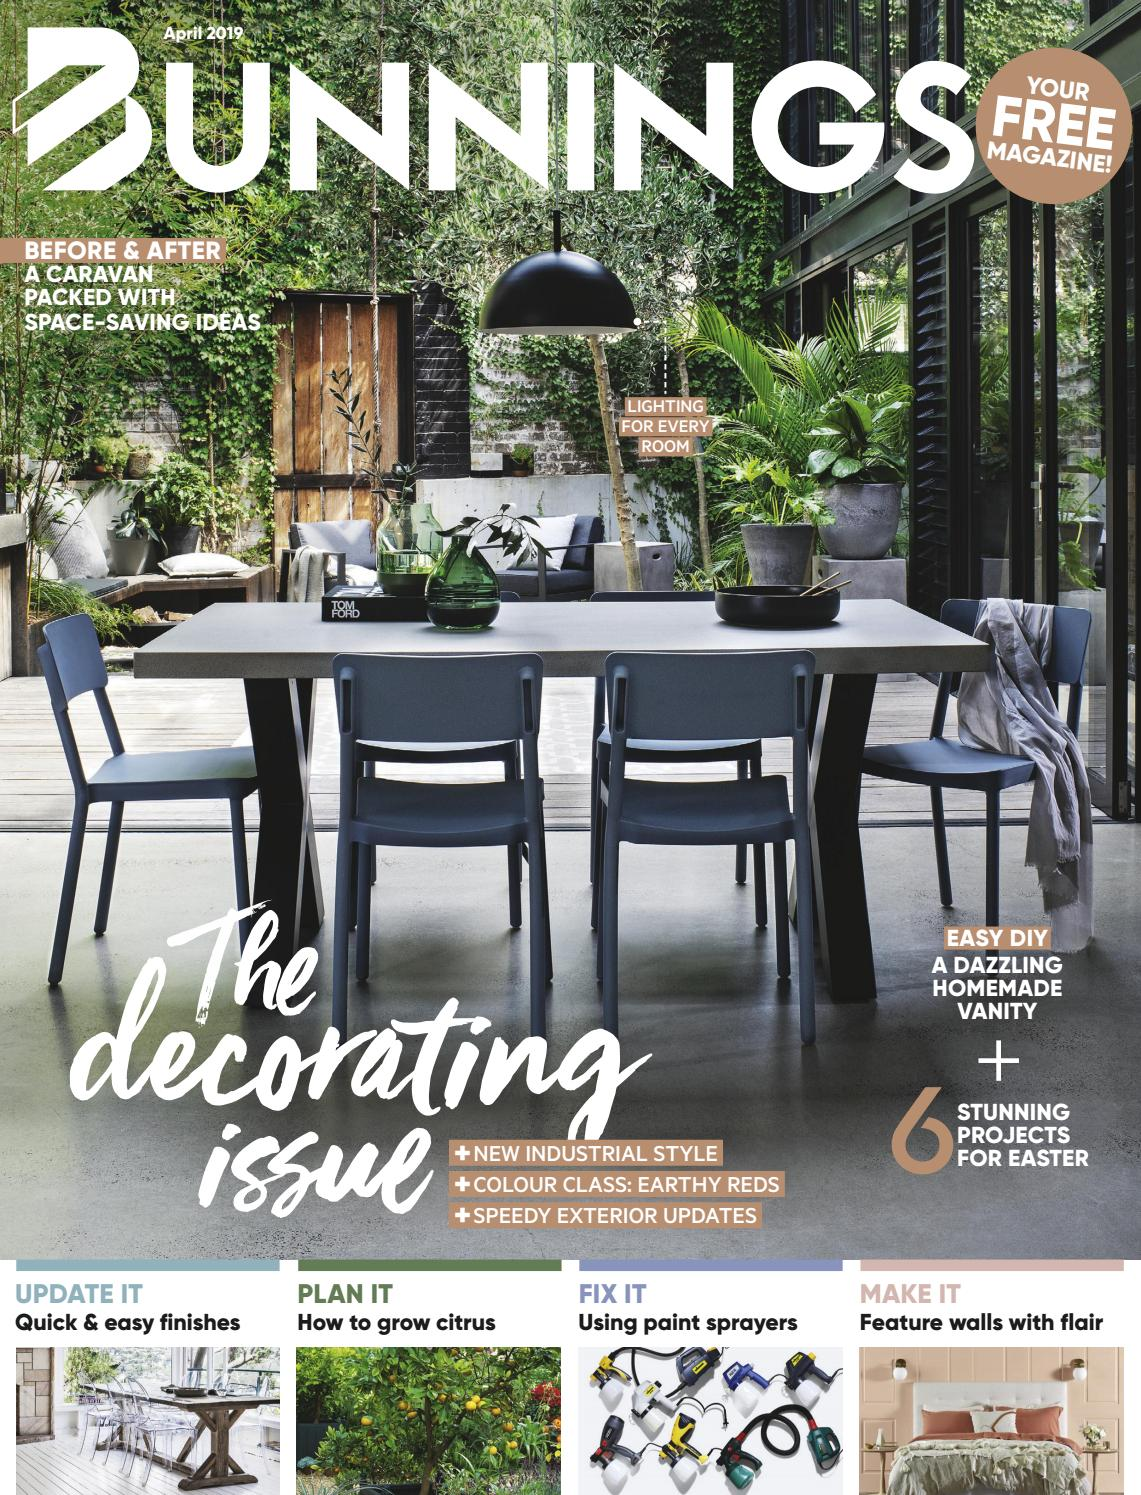 Collection of Interactive Outdoor Decor Bunnings Site @house2homegoods.net